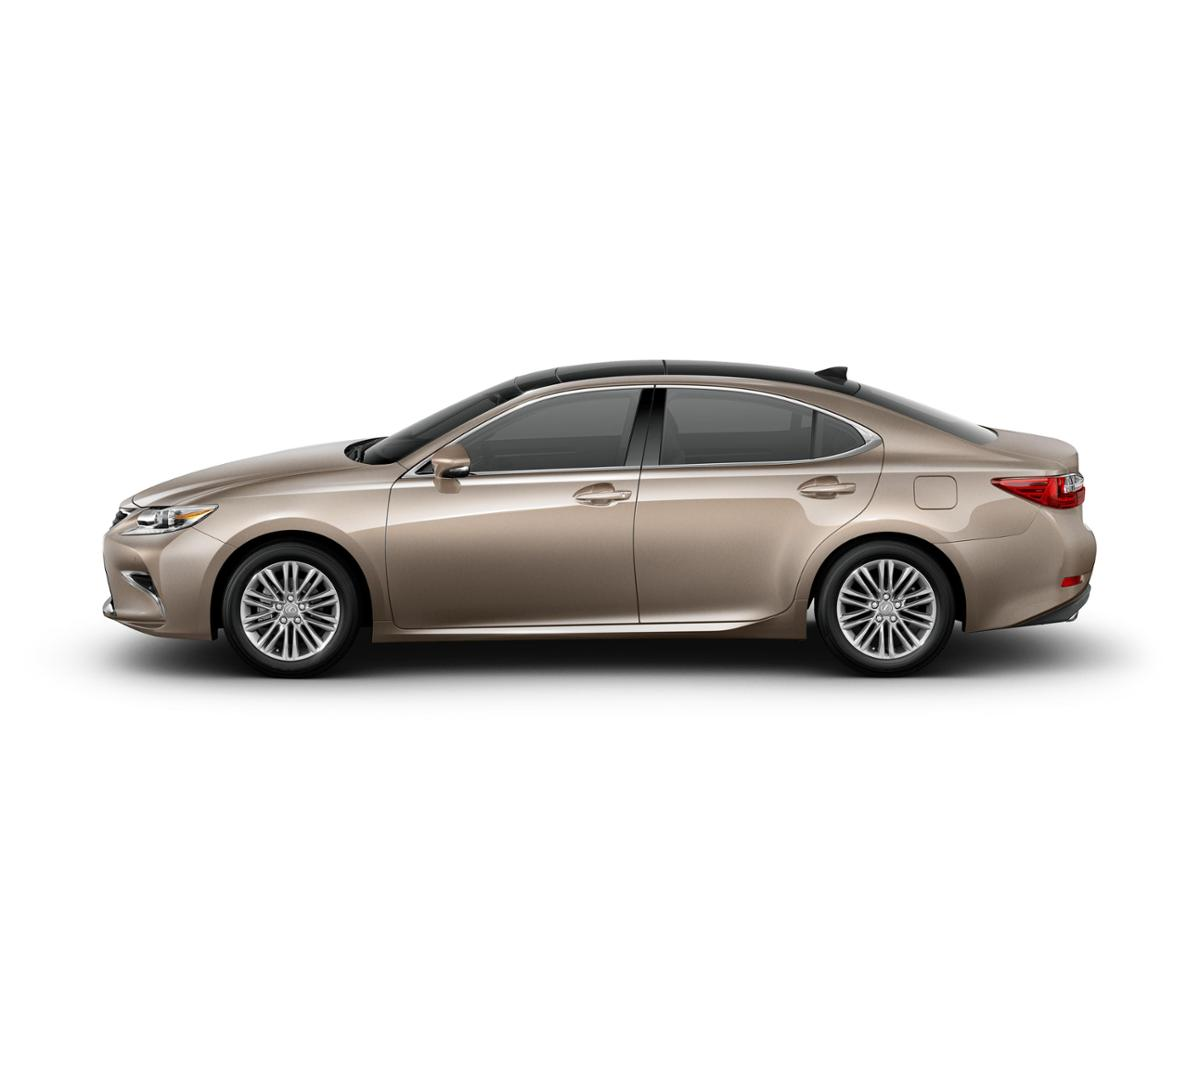 2017 Lexus ES 350 Vehicle Photo in Santa Monica, CA 90404